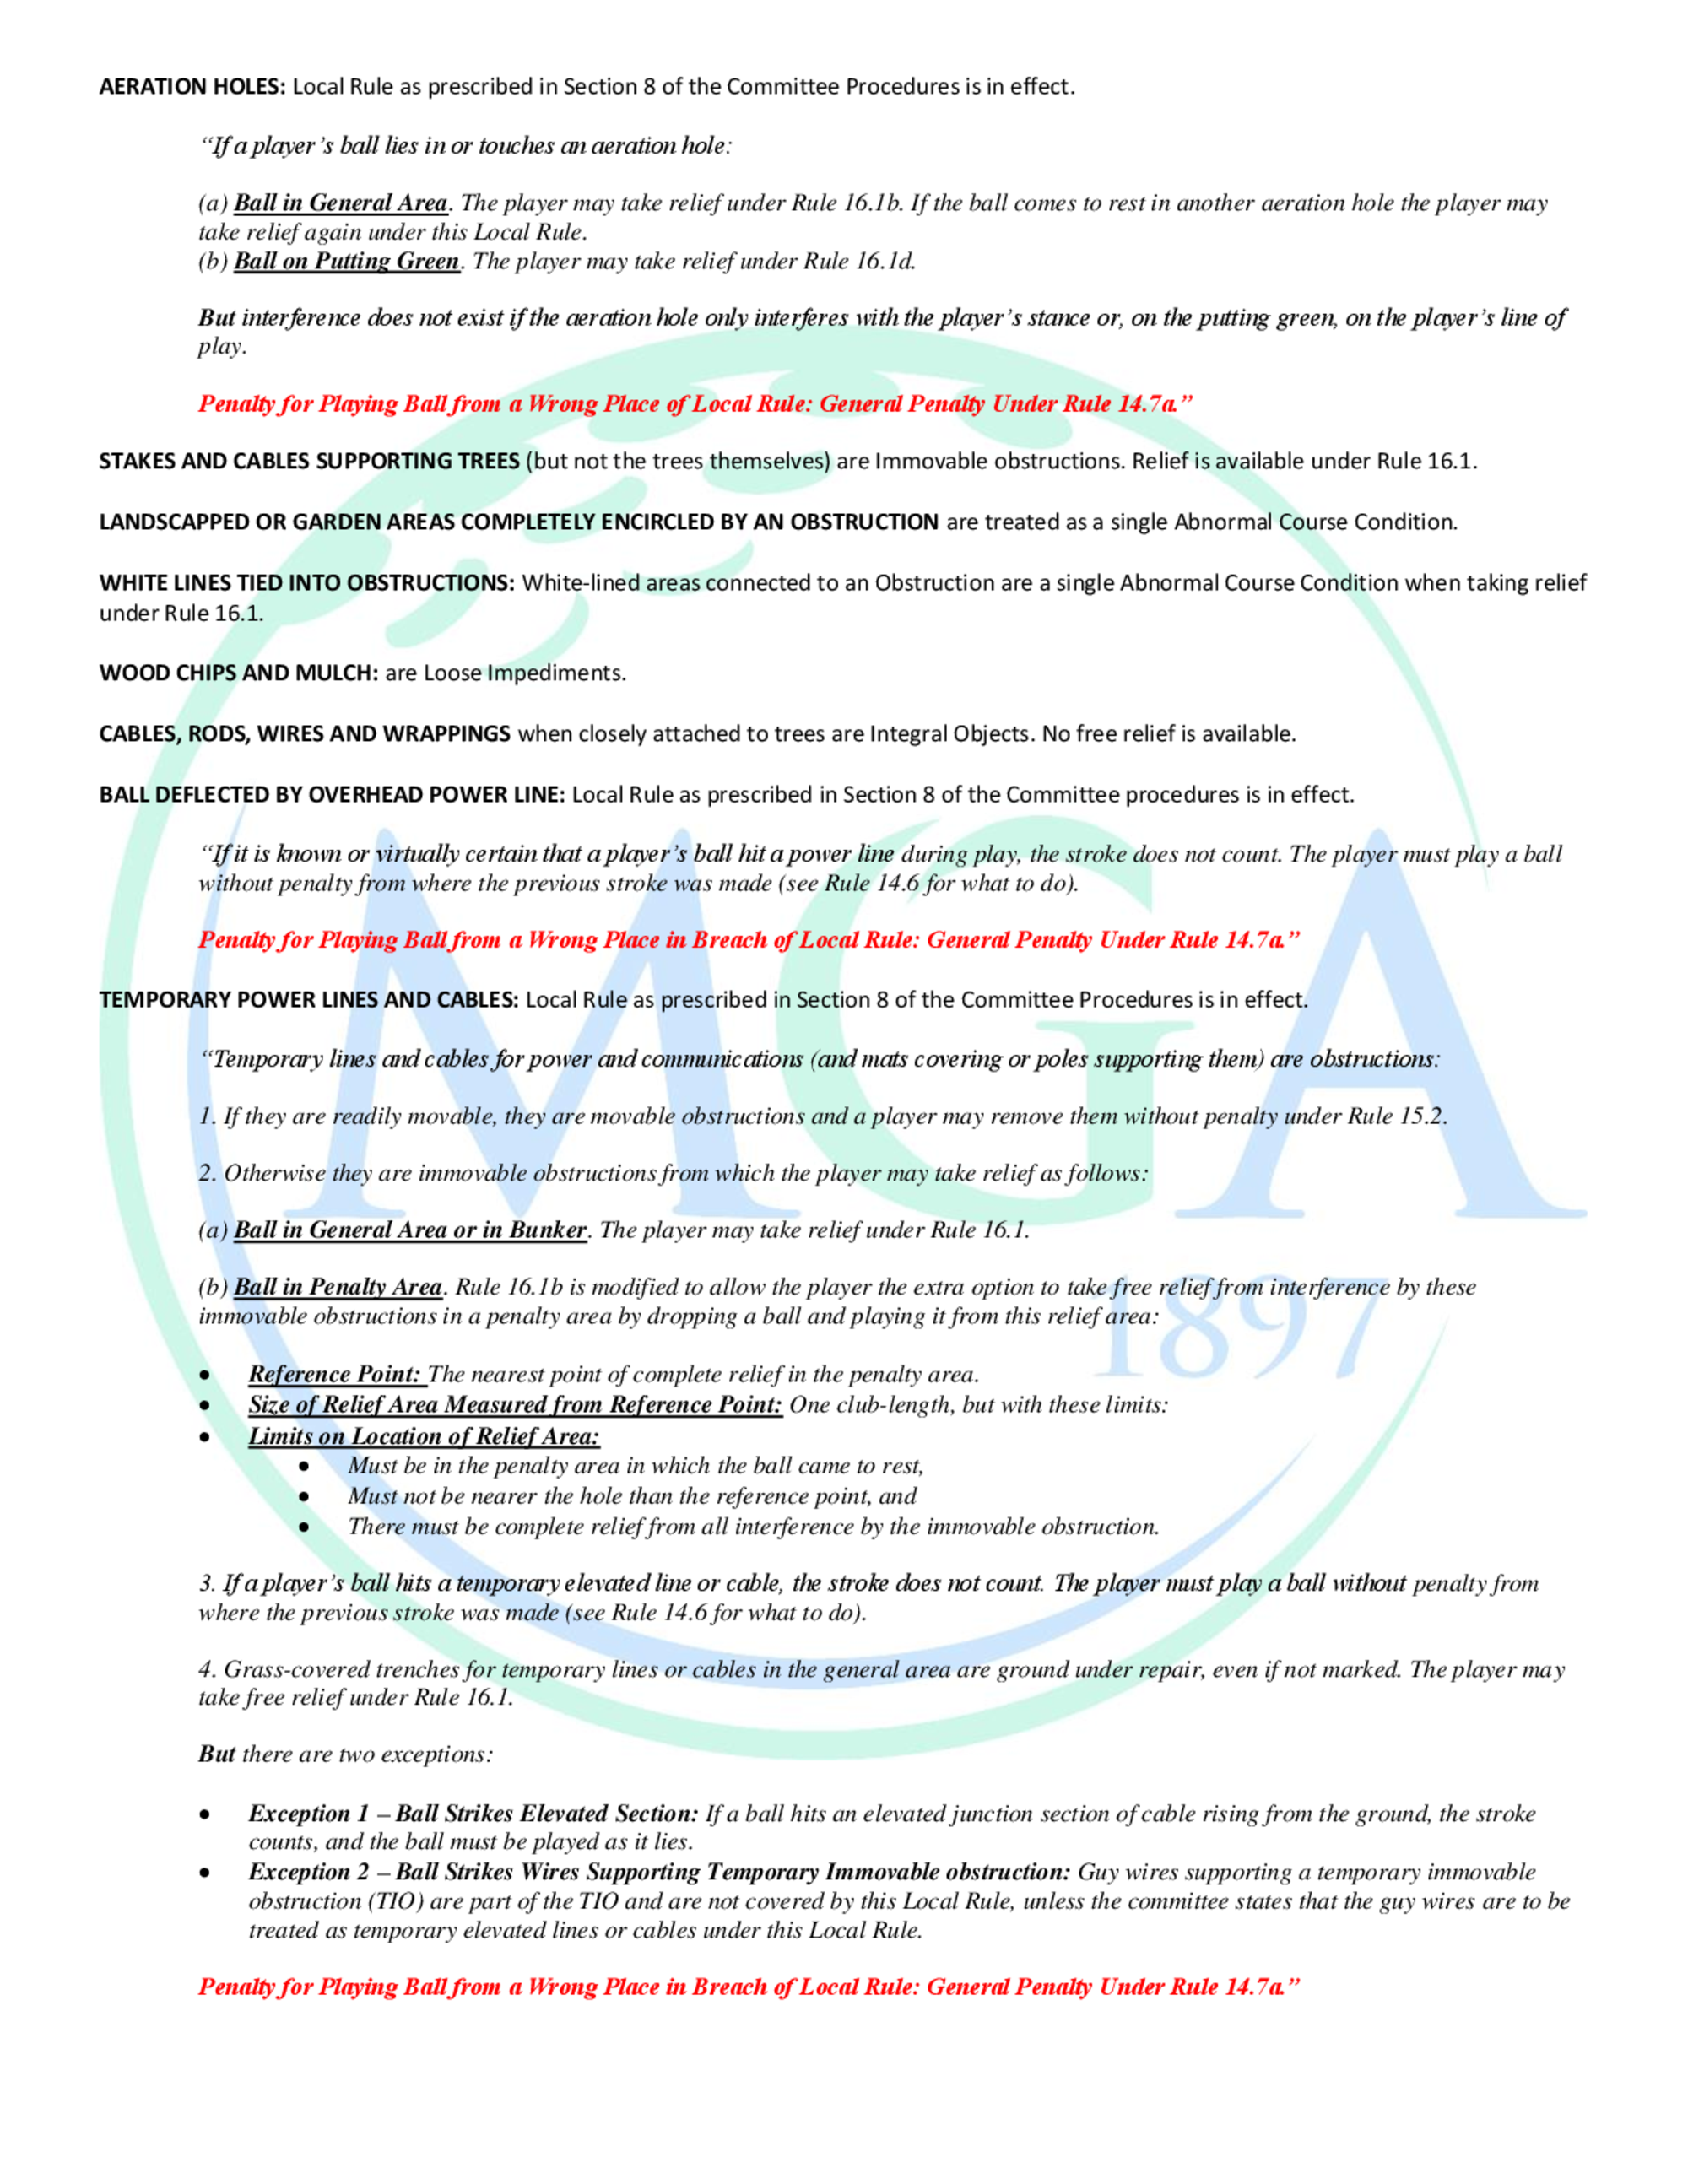 Mga hard card supplement document  2